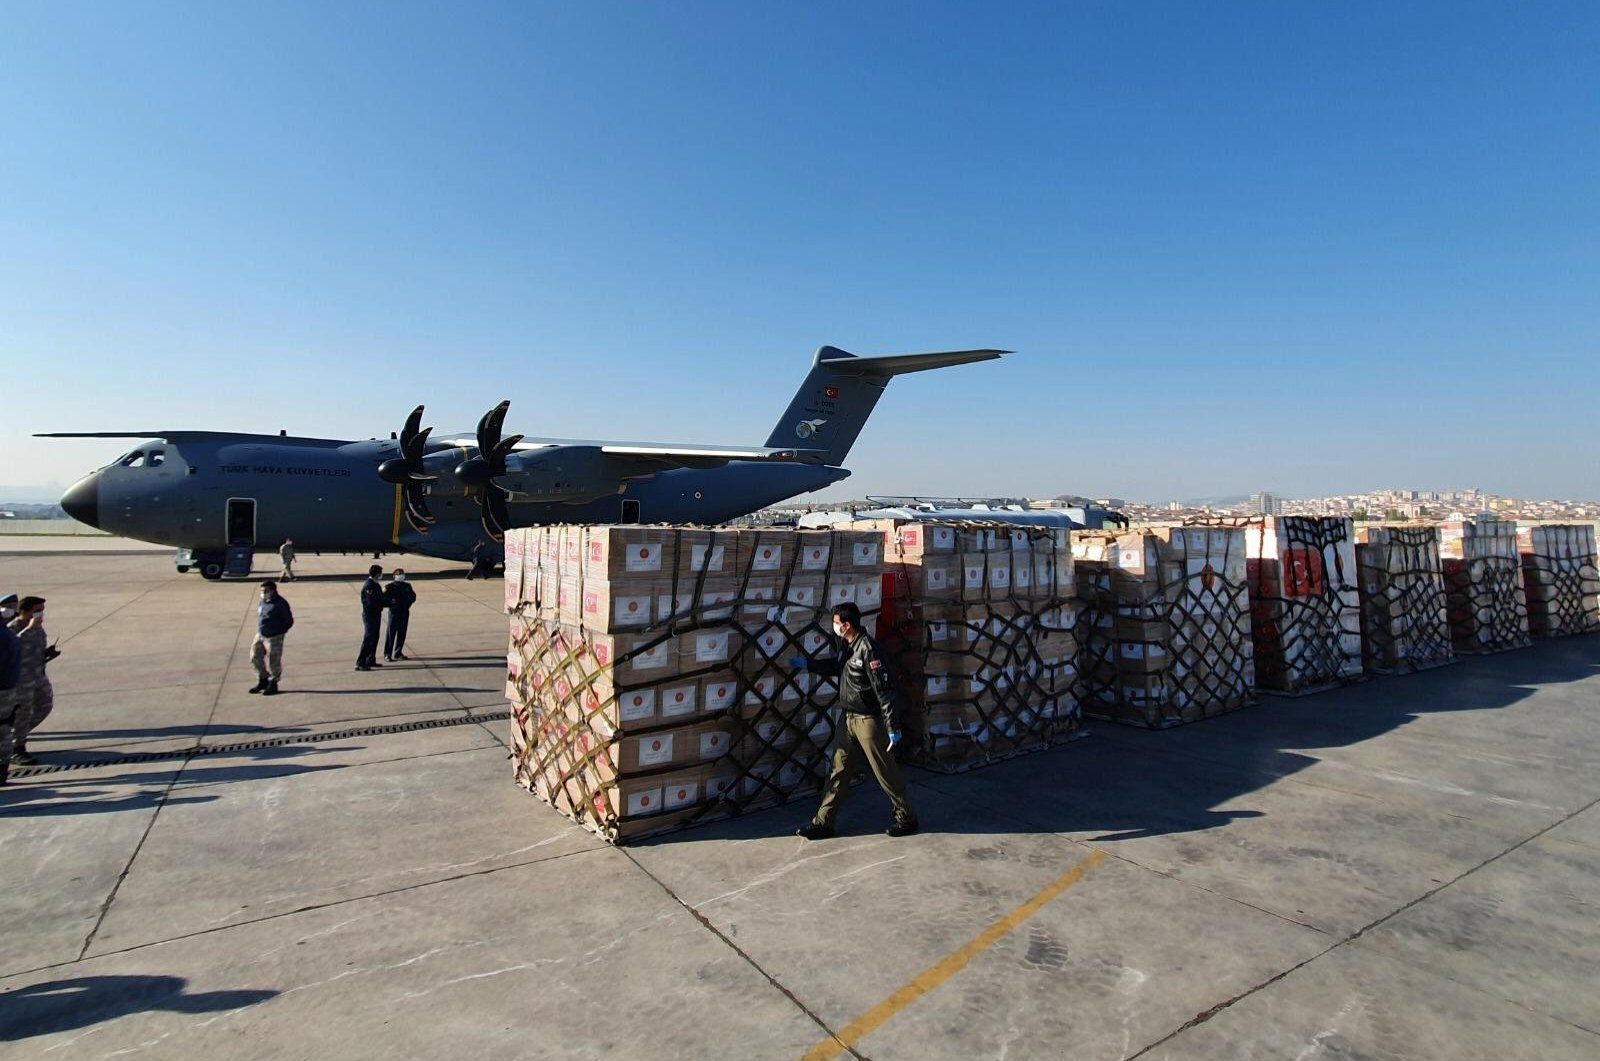 A shipment of medical supplies, part of a major aid campaign by Turkey which has dispatched supplies to dozens of countries since the coronavirus pandemic erupted, is lined up by a Turkish military cargo plane at Etimesgut airport before departing for the United States, Ankara, Turkey, April 28, 2020. (Reuters Photo)